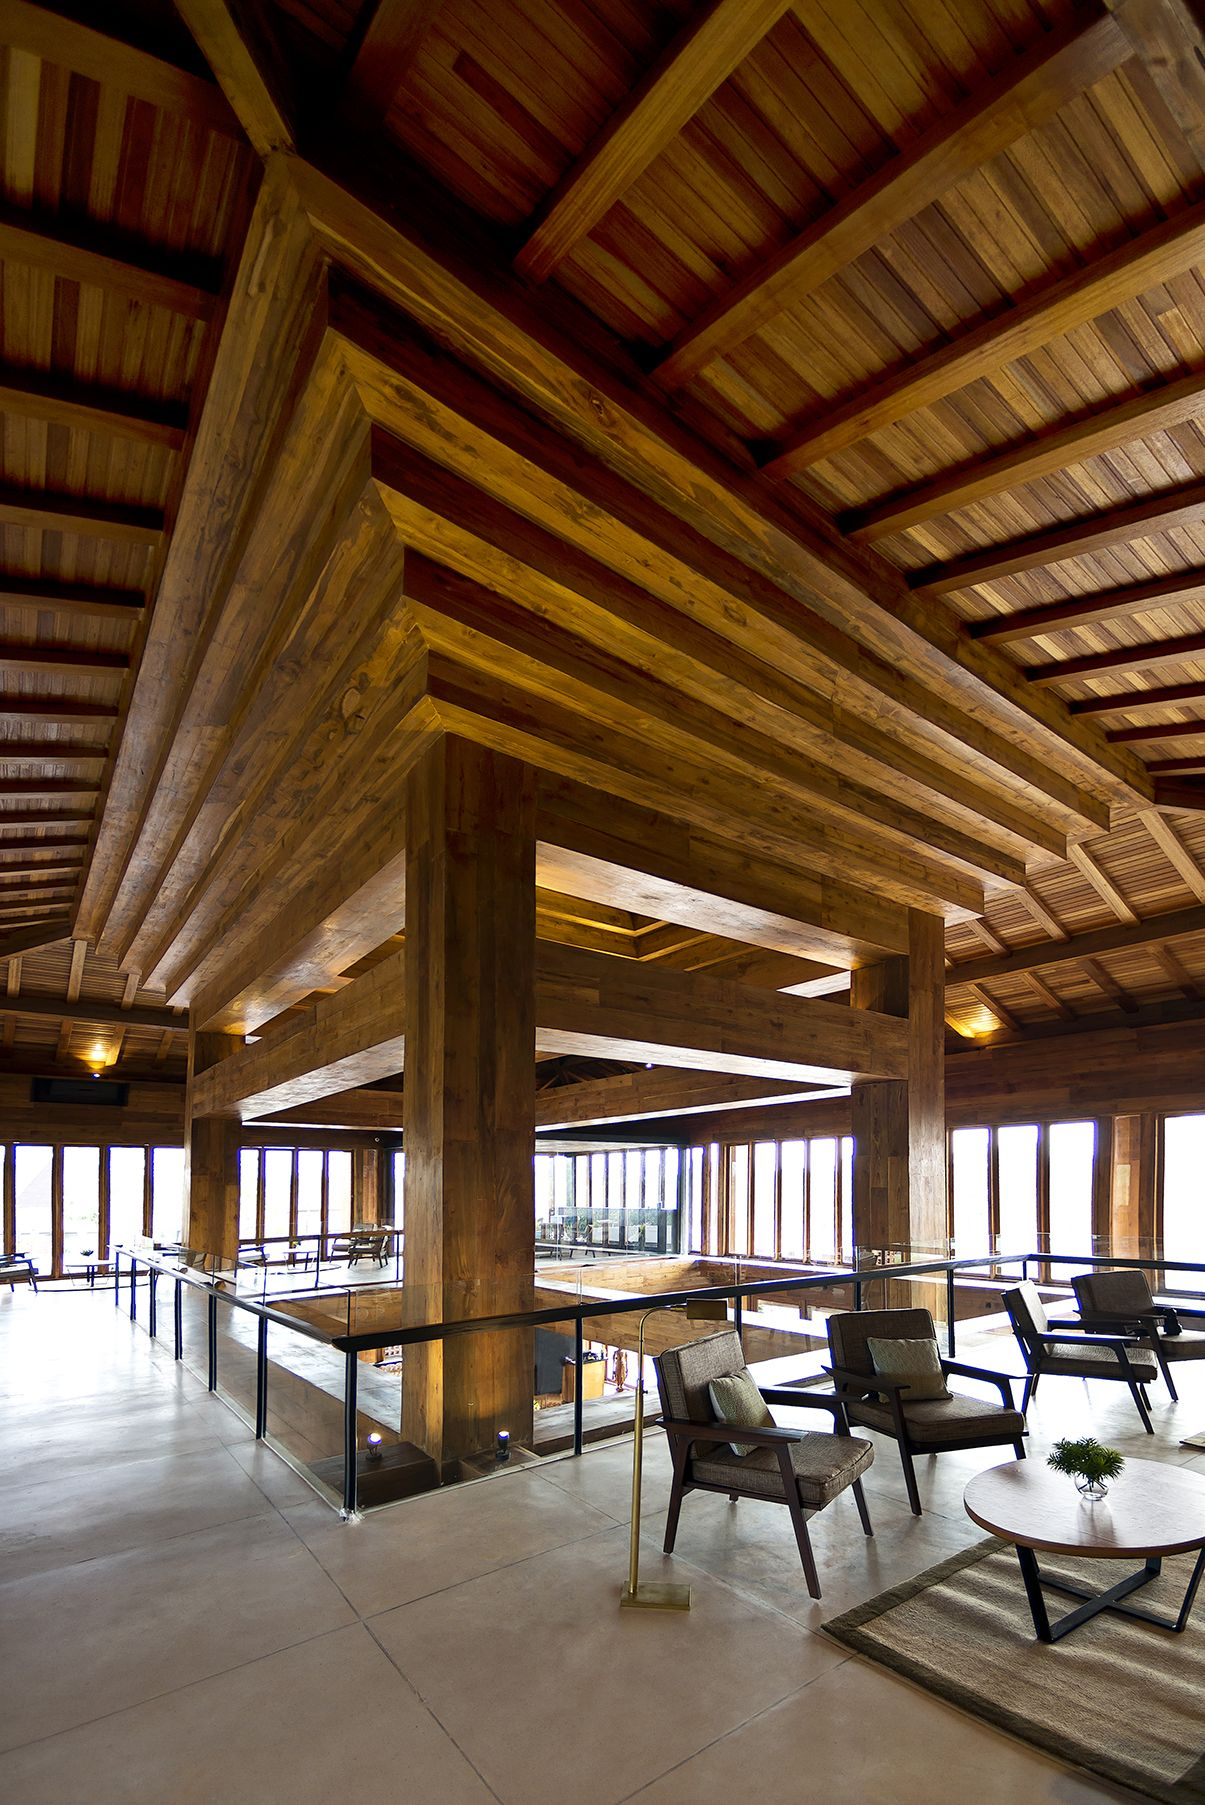 Djati Lounge In Malang, Indonesia By Ellyana Tse #Wood #Pool